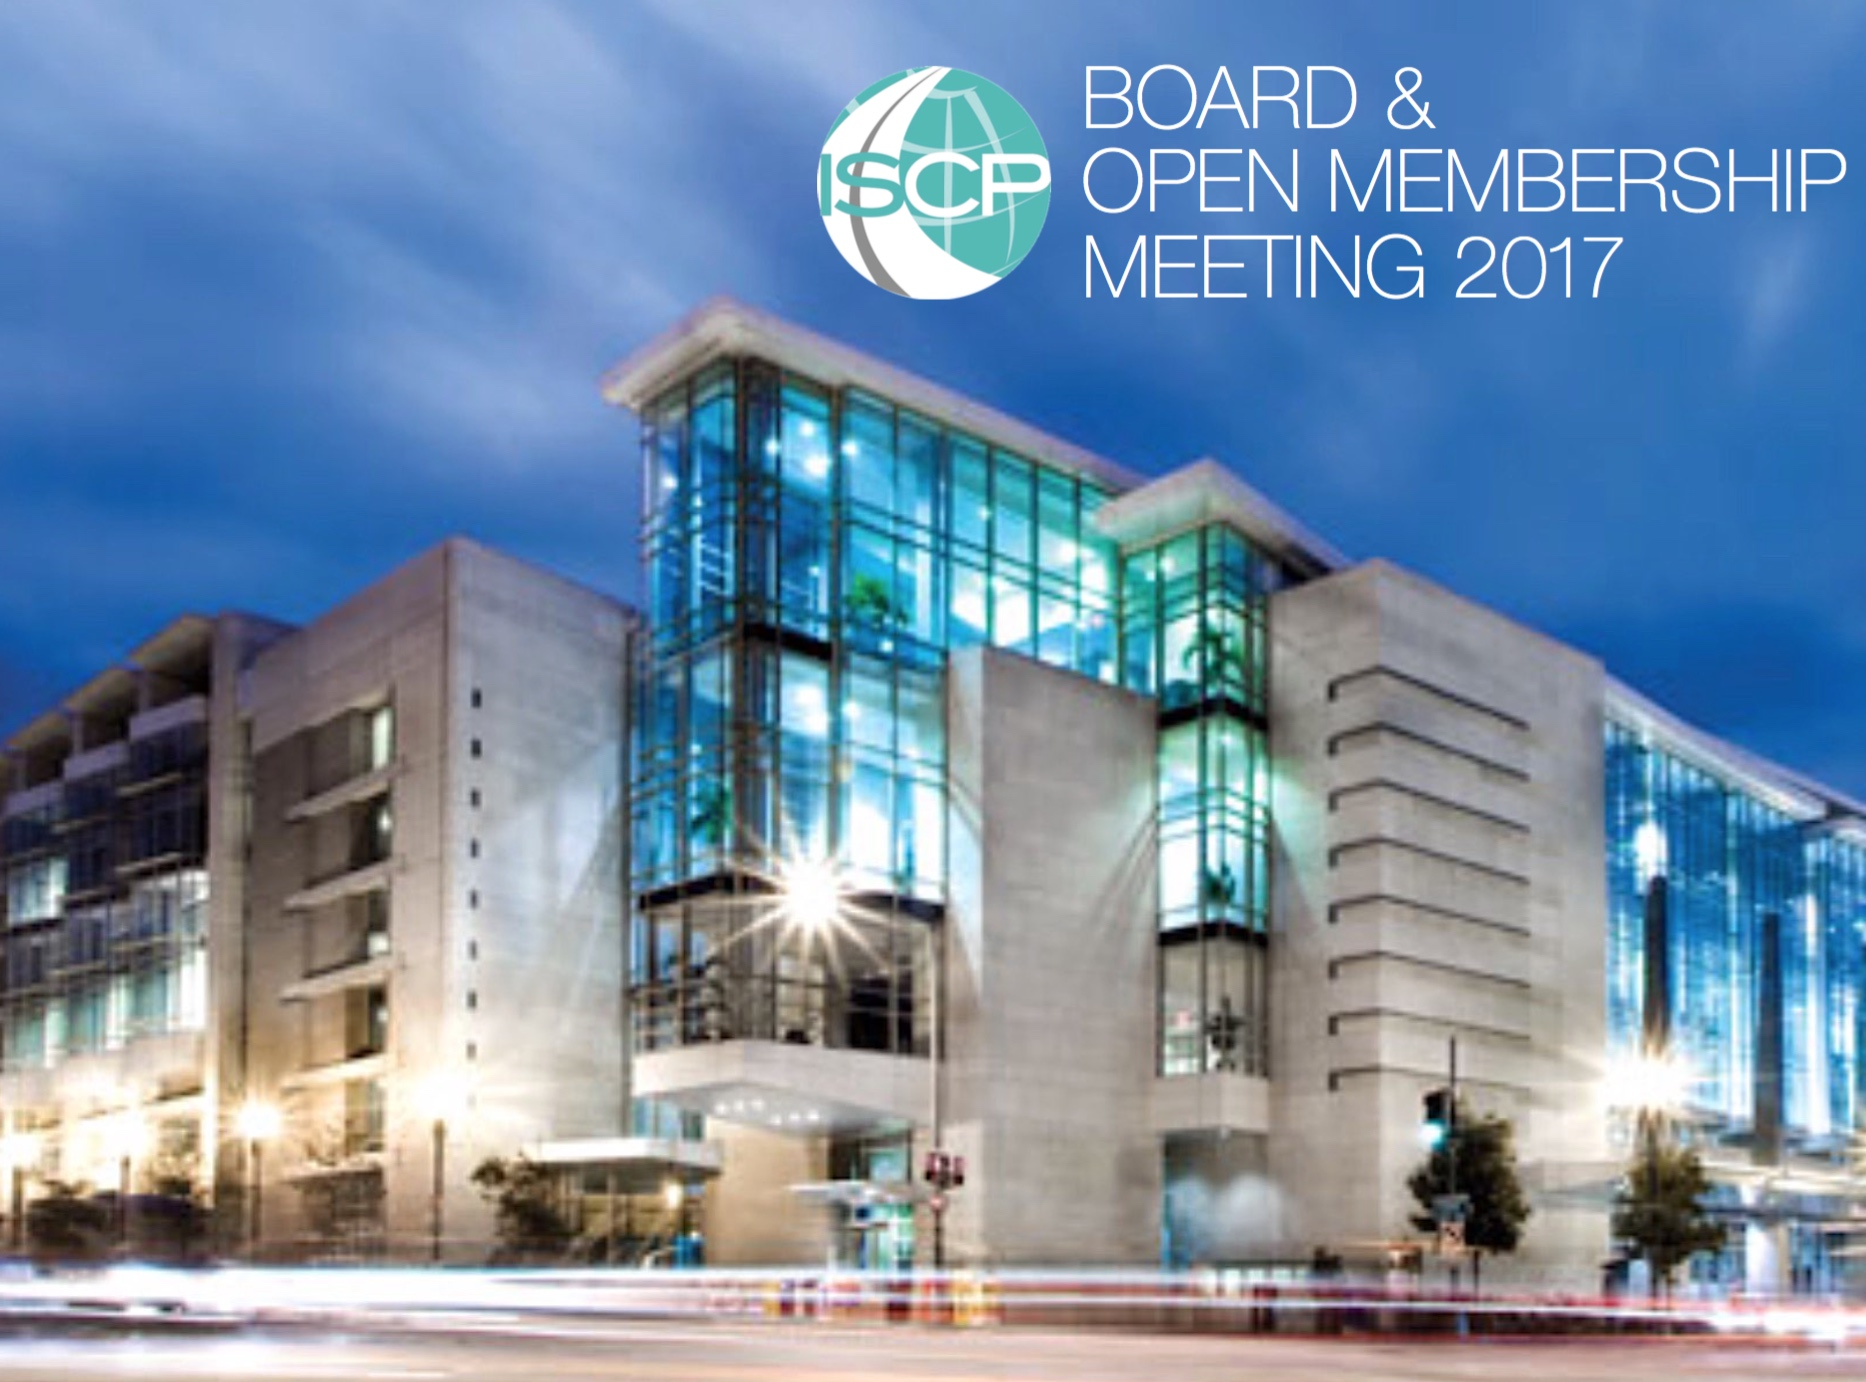 ISCP Board & Open Membership Meeting 2017 to be Held January at TRB